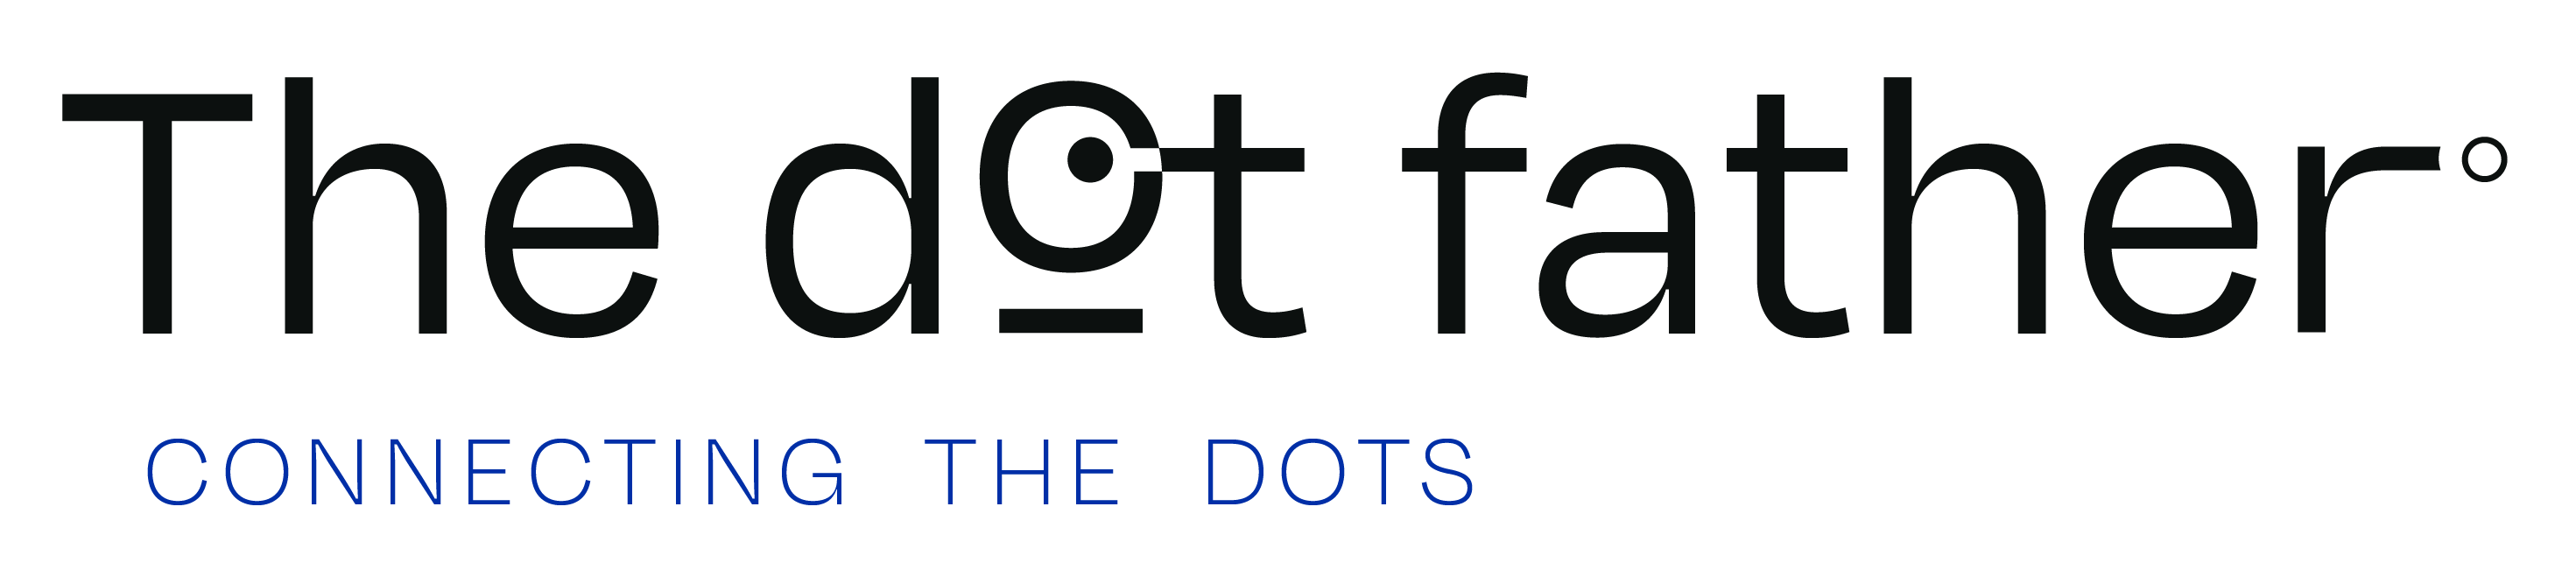 THE DOT FATHER